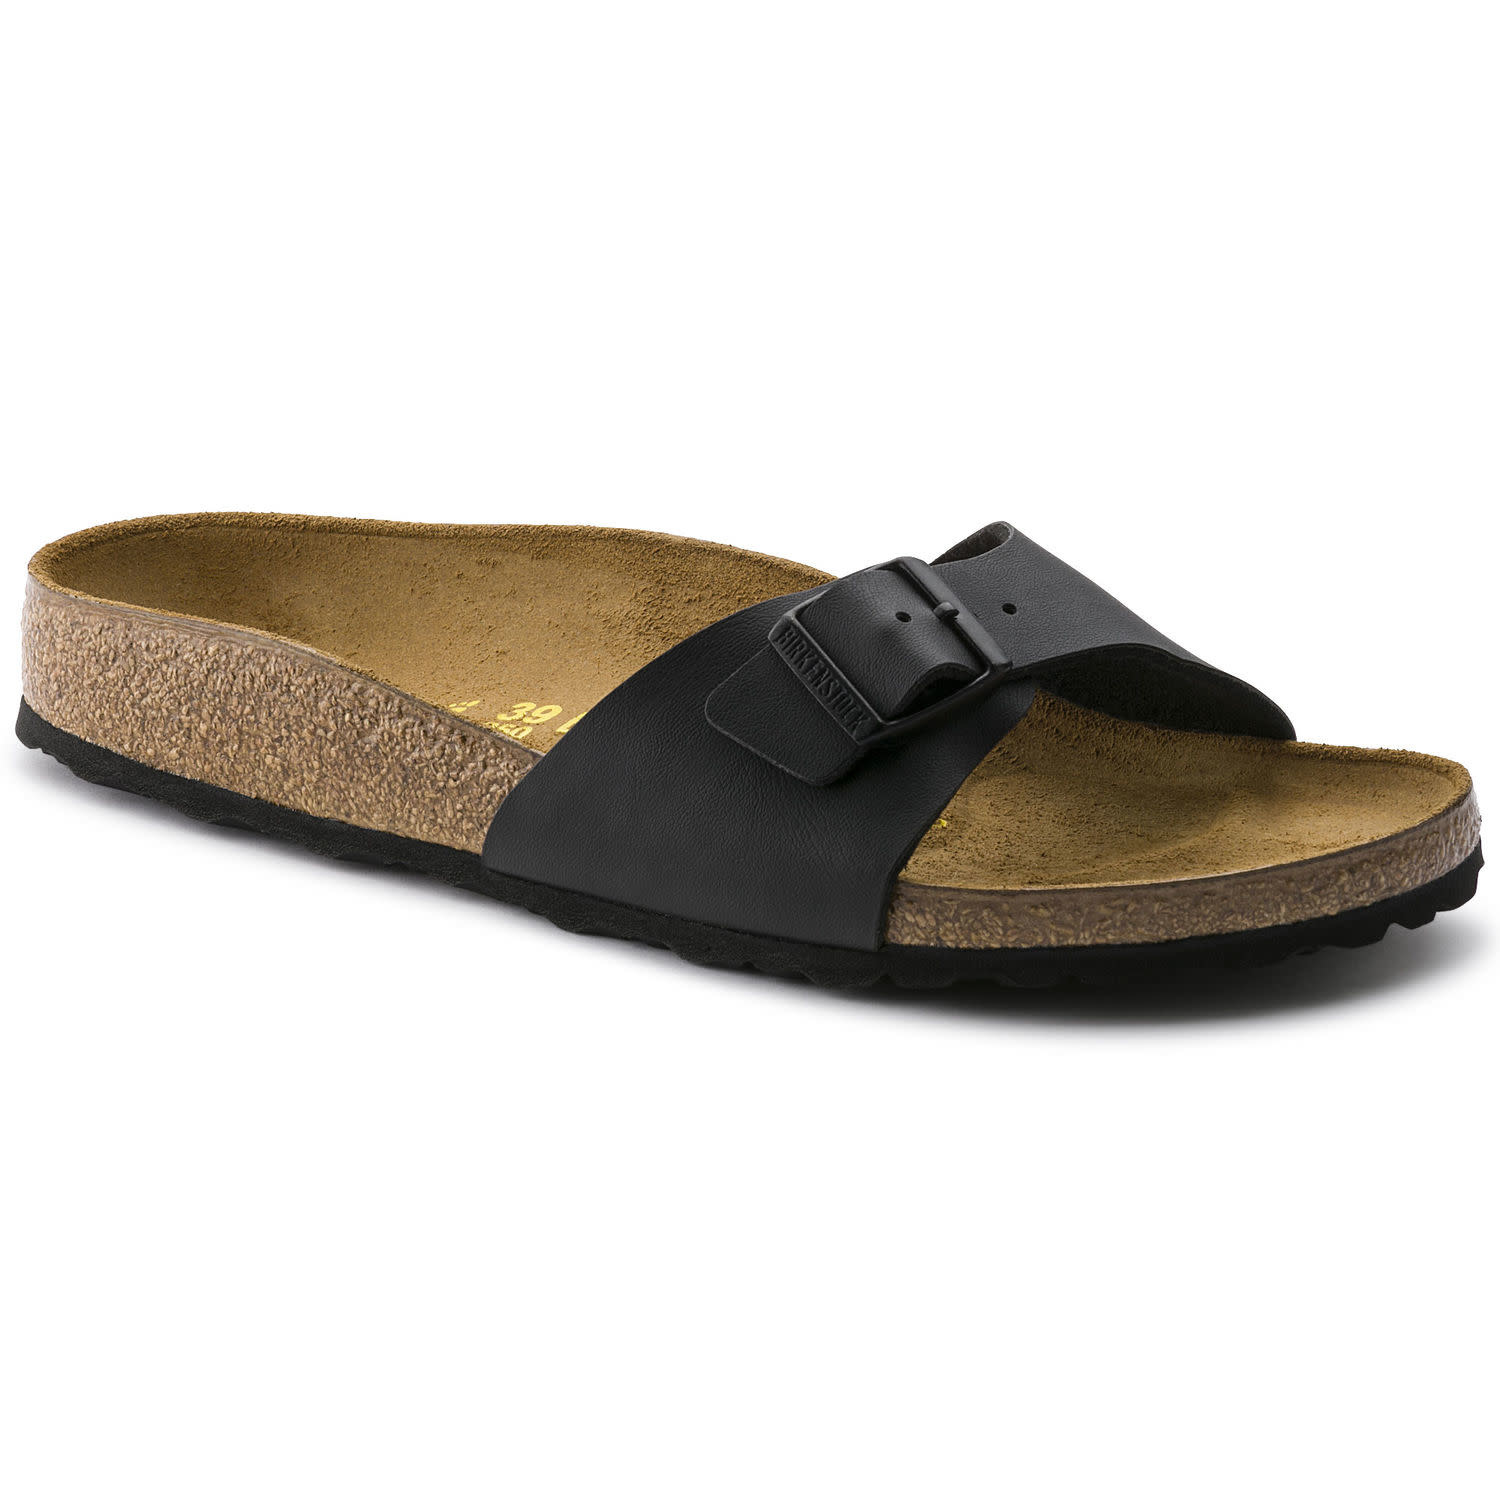 Birkenstock Birkenstock Womens Madrid Black BS